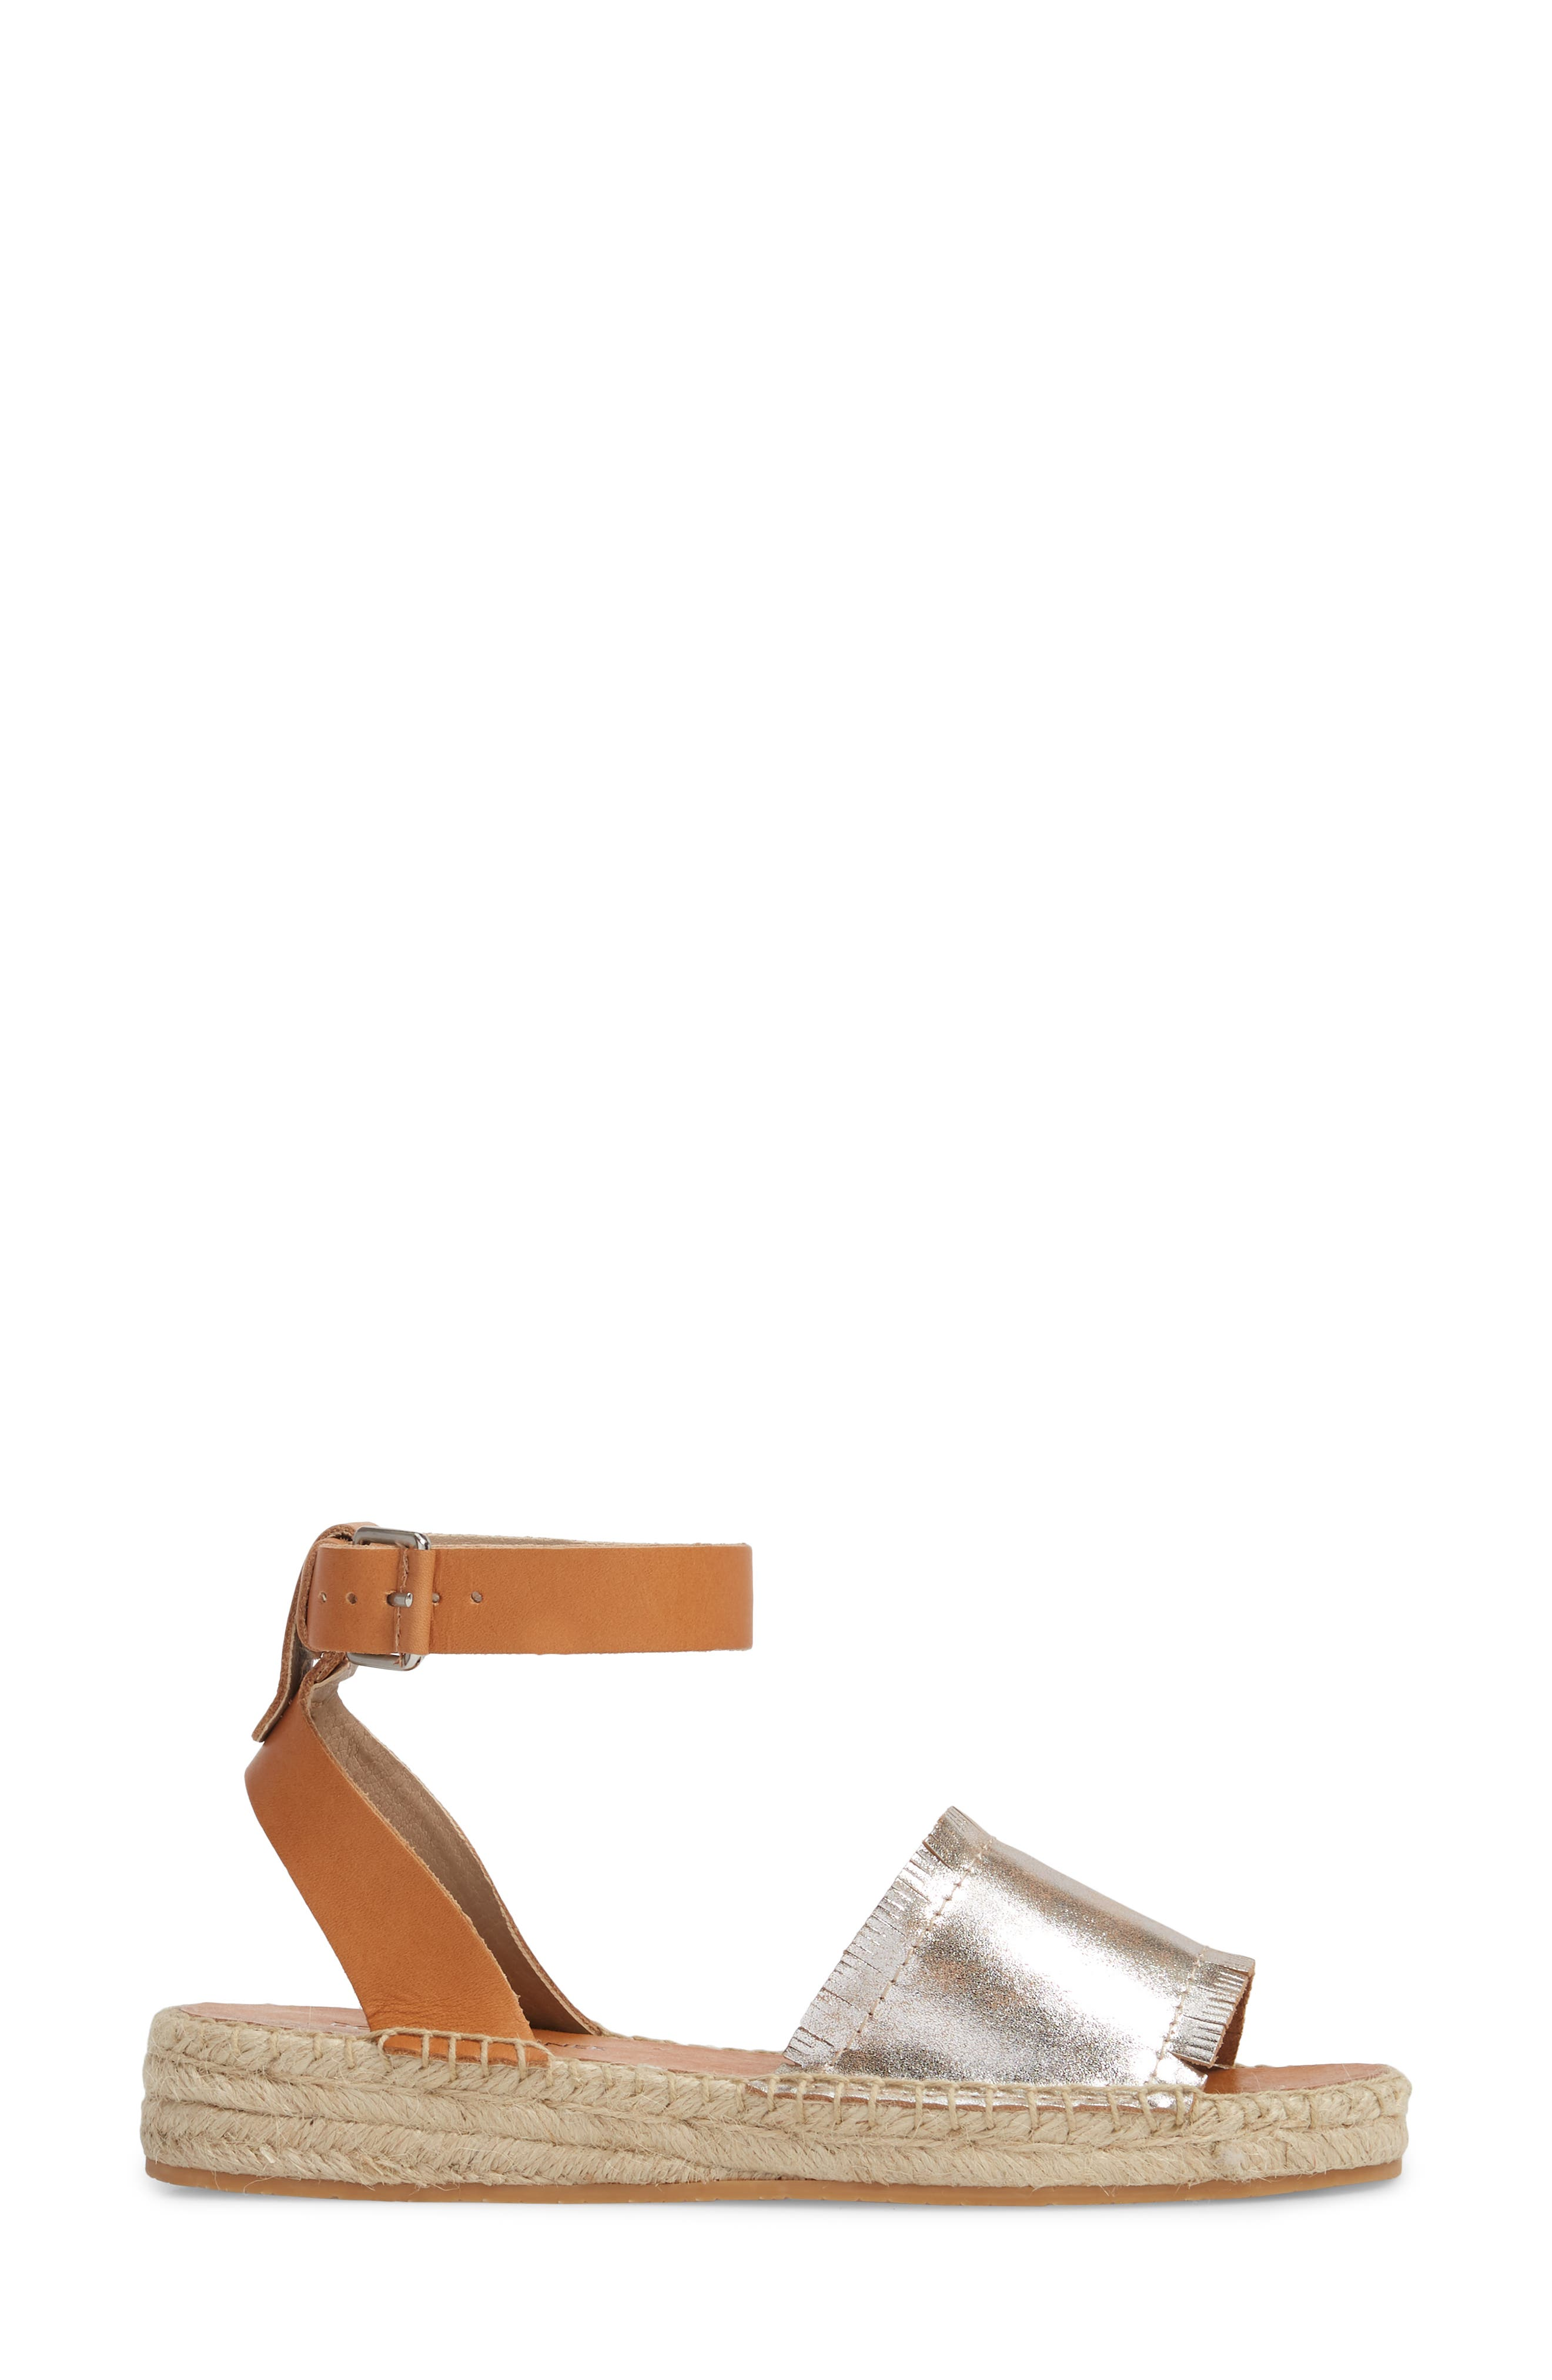 Rowen Espadrille Sandal,                             Alternate thumbnail 3, color,                             Silver Leather